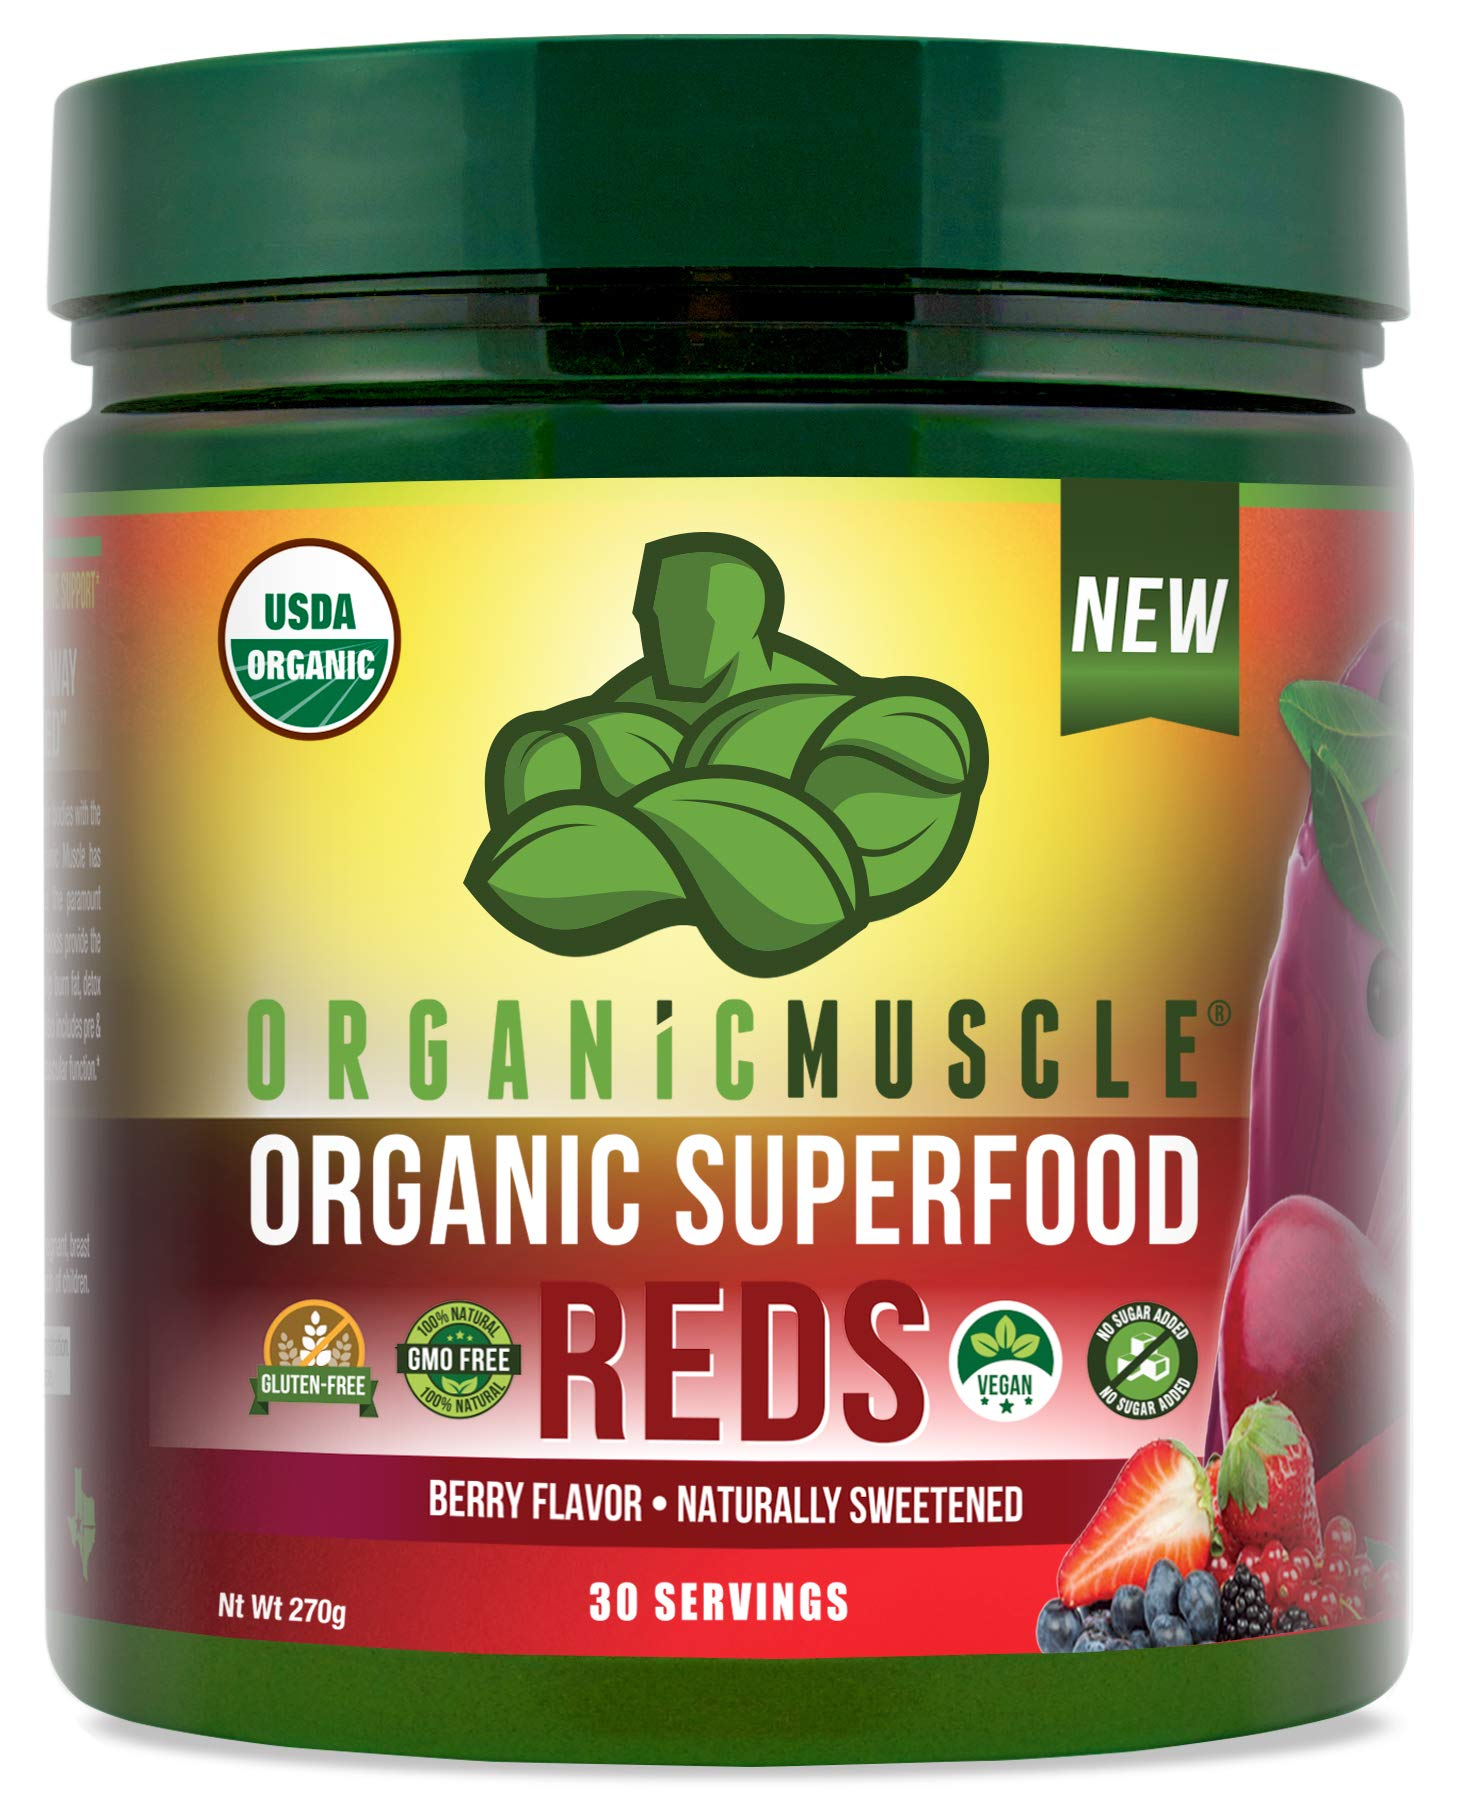 Certified Organic Superfood Reds Powder | Vital Reds Juice Supplement for Detox, Energy, Focus, Digestion, Metabolic Boost & Anti-Aging | Vegan, Non-GMO, Berry Flavor, 30 Day Supply | ORGANIC MUSCLE by Organic Muscle (Image #1)